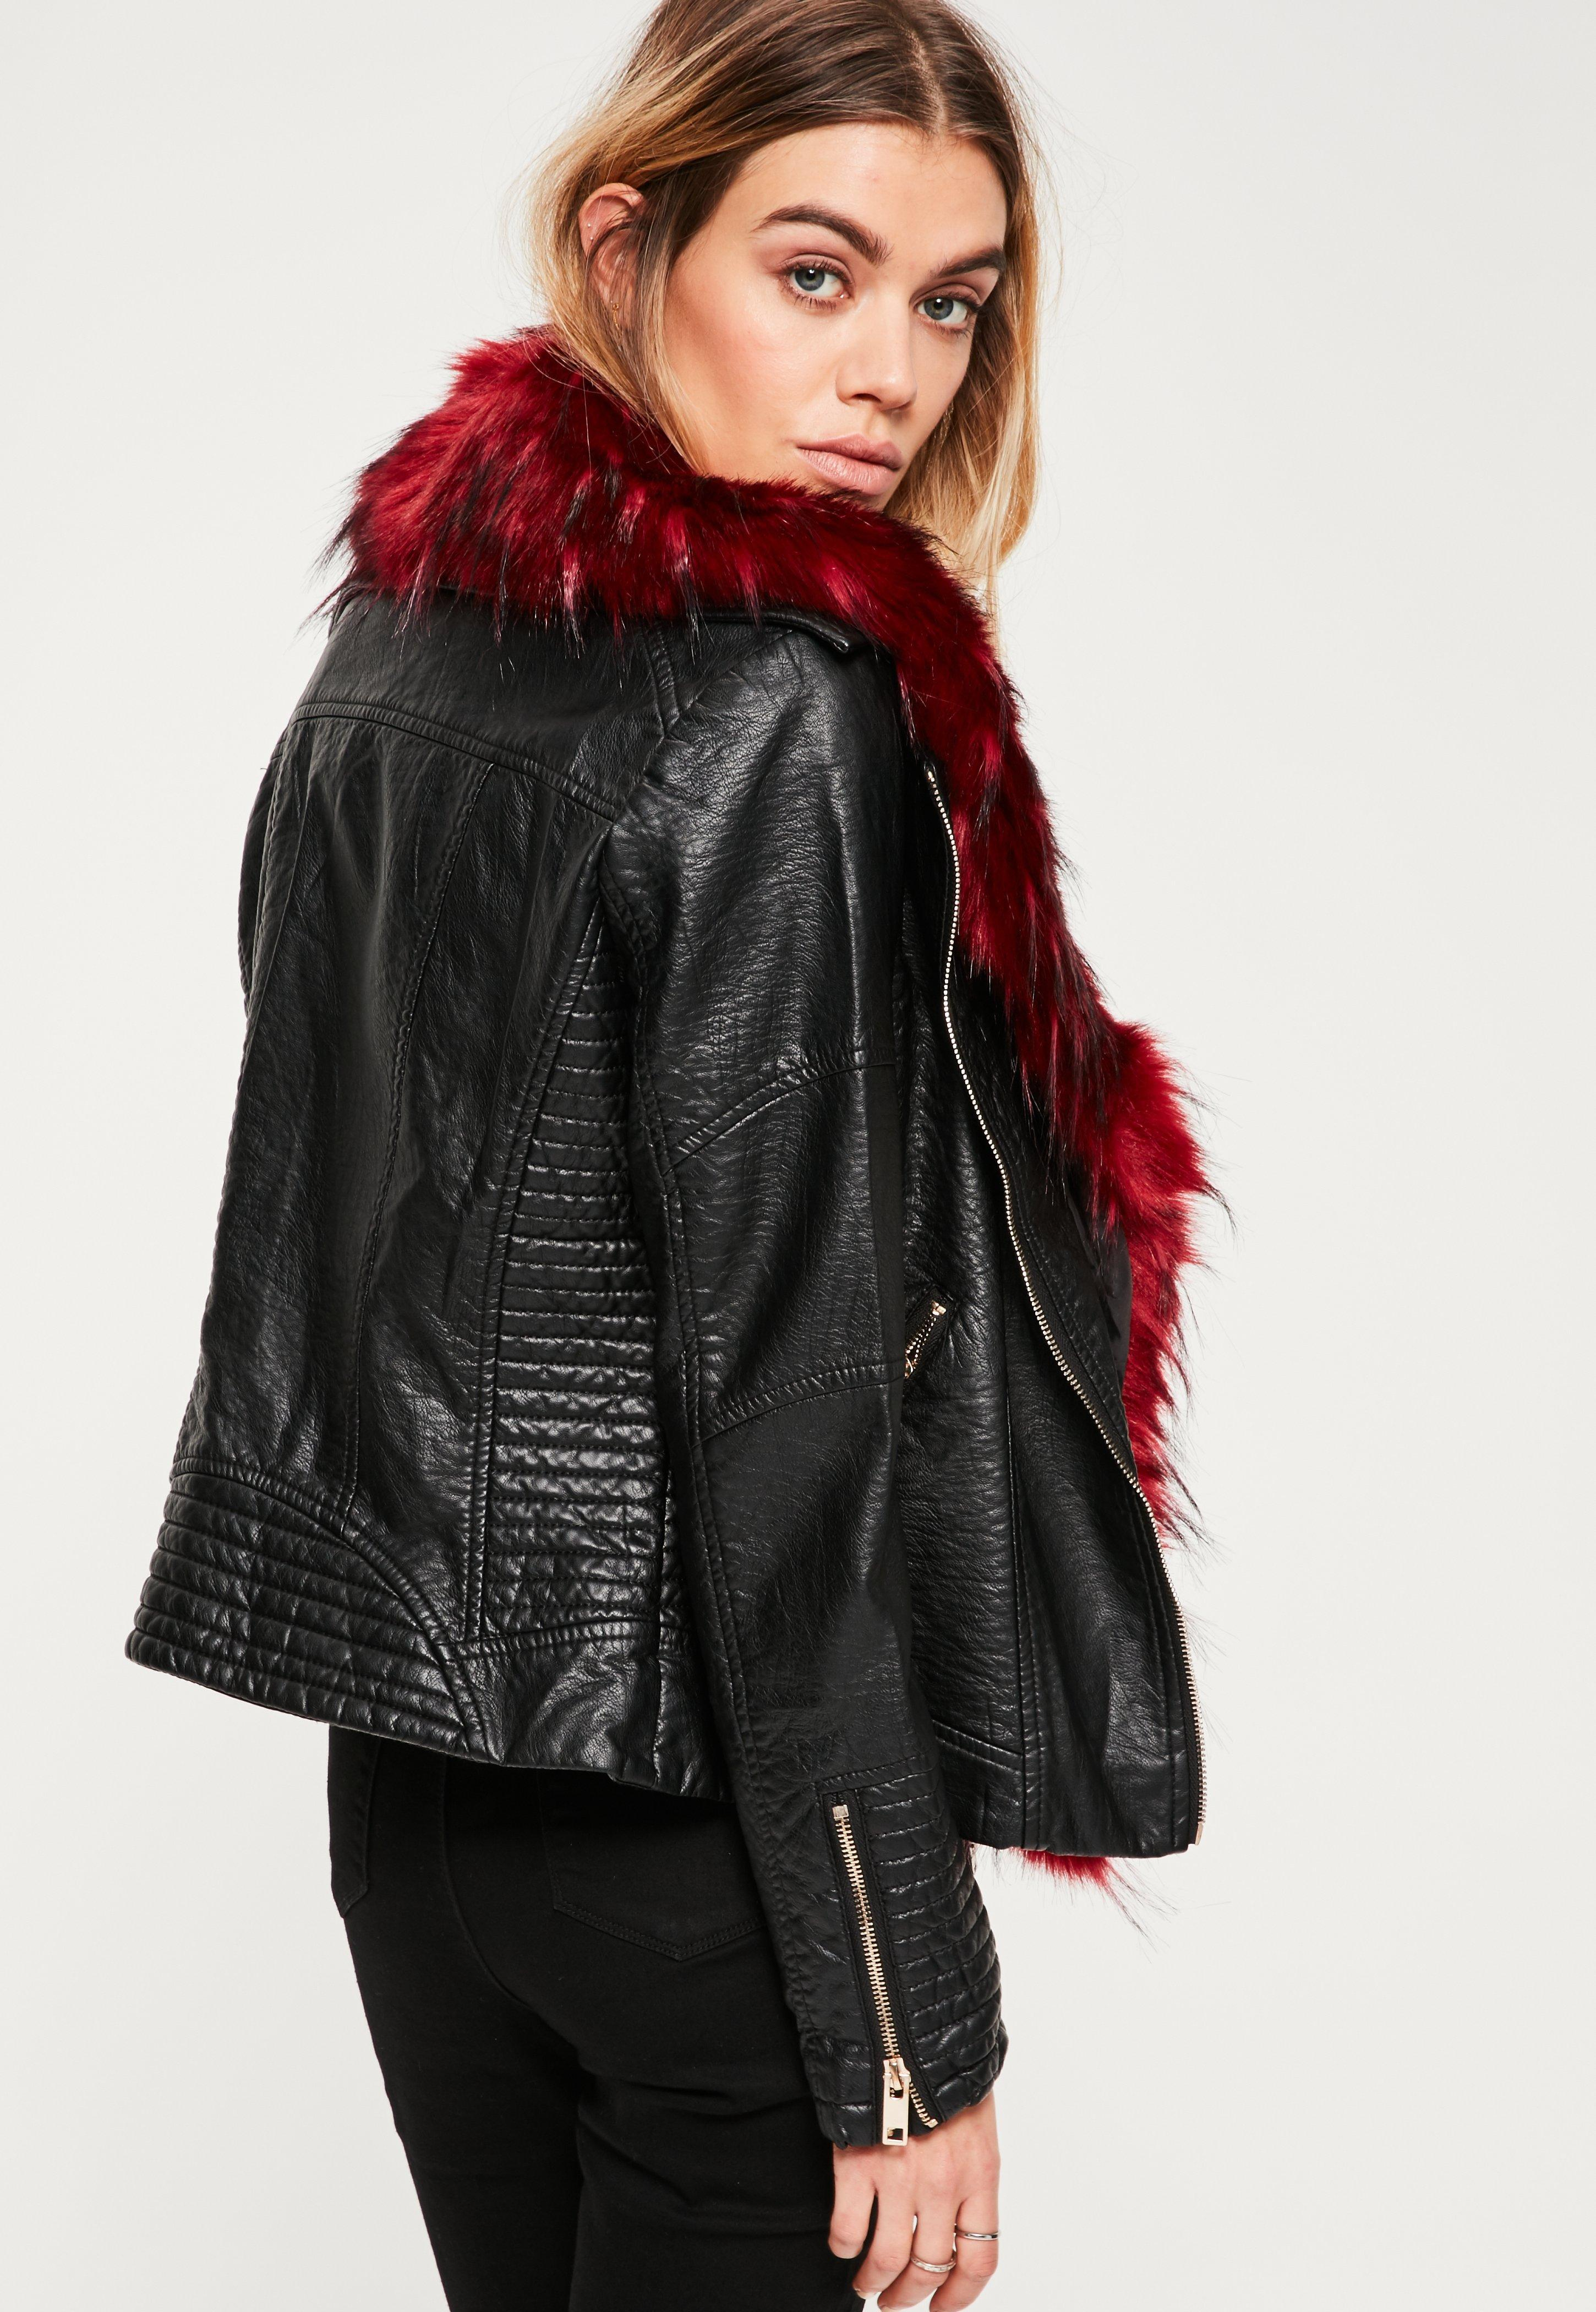 Faux red leather jacket